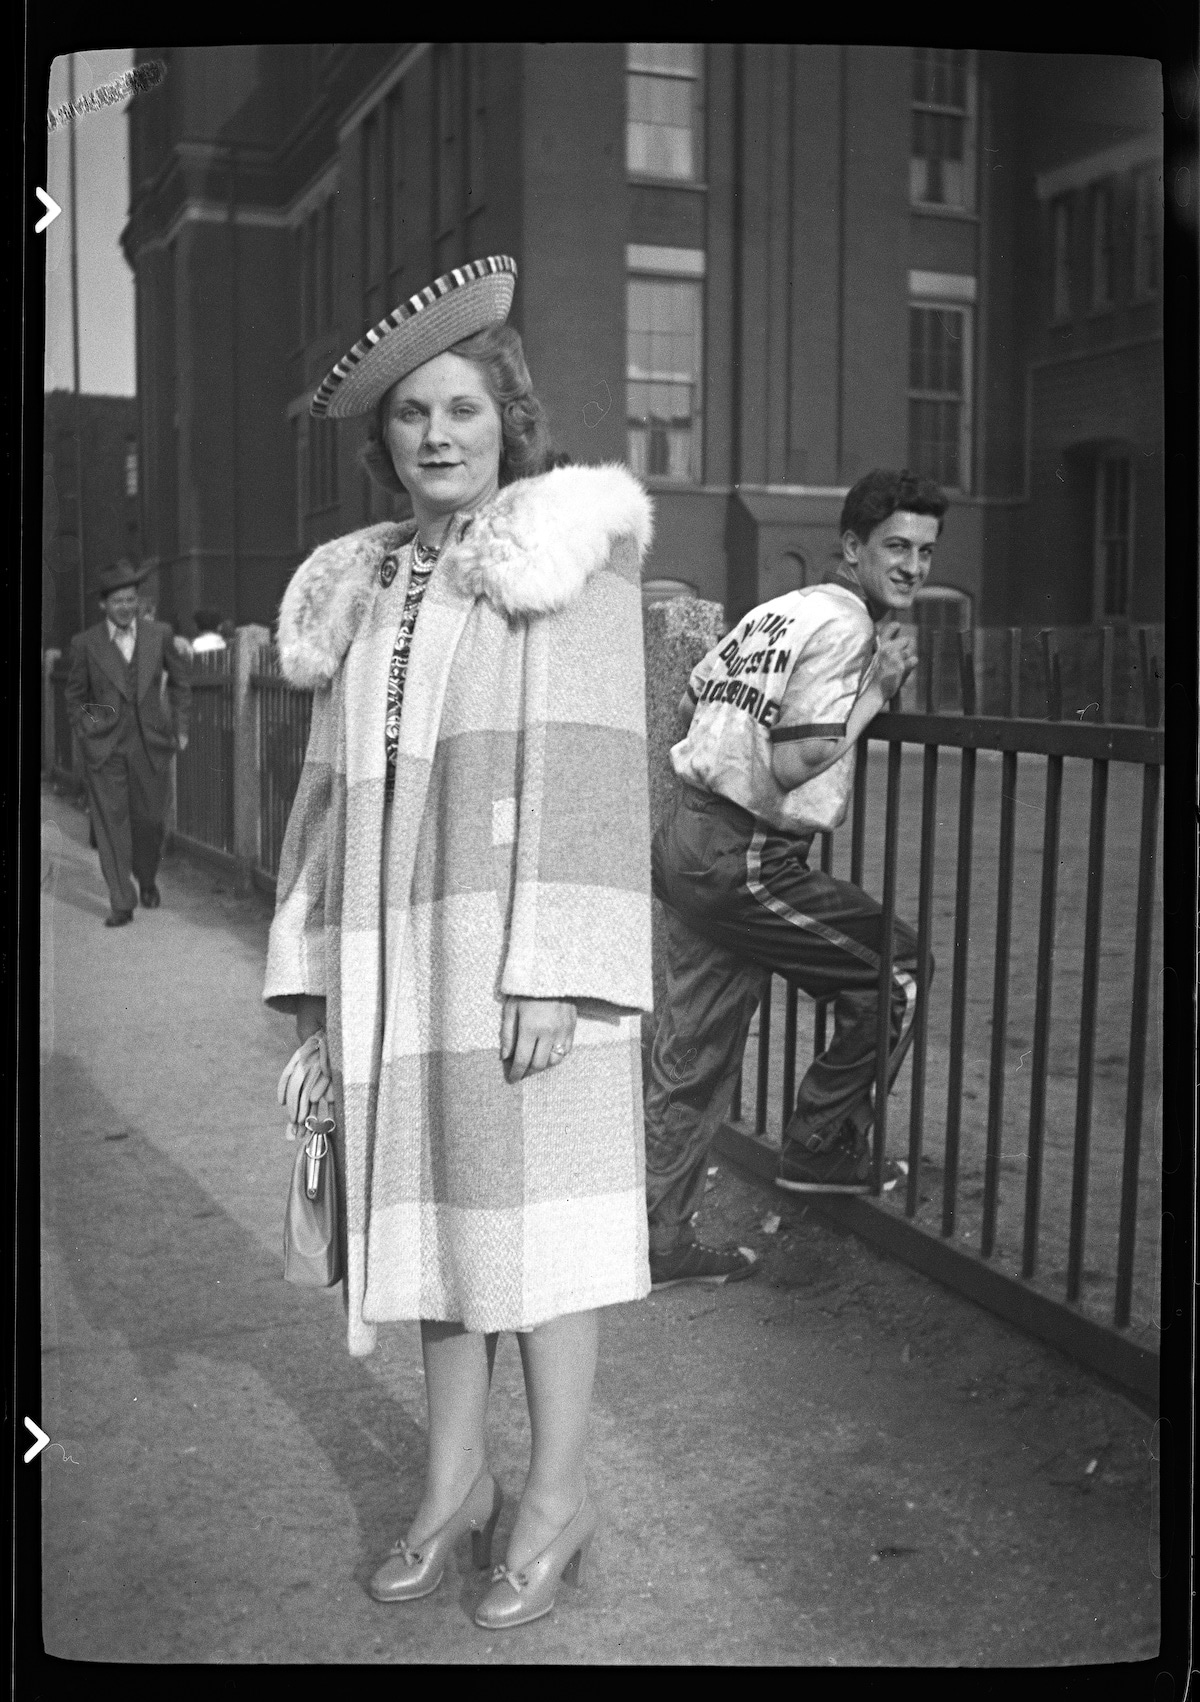 Woman in Elegant Vintage Clothes Posing on the Street